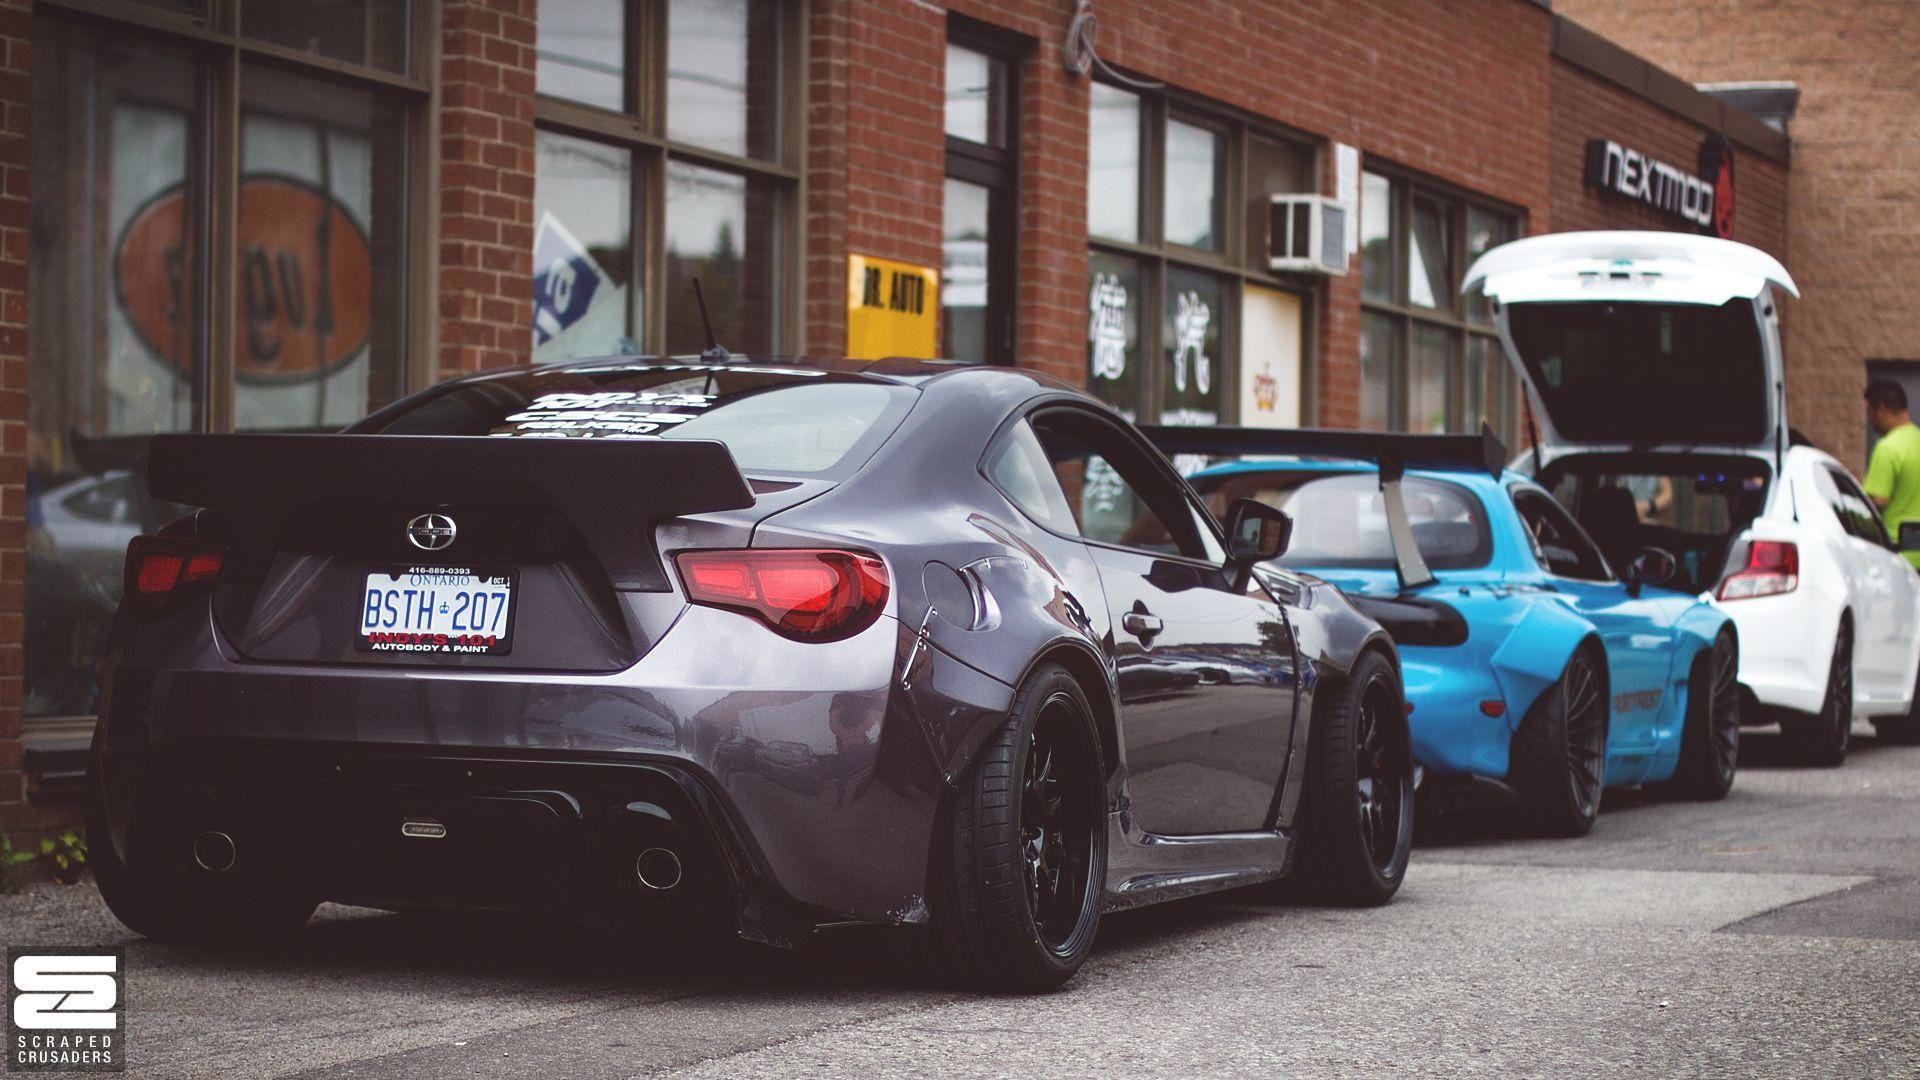 Res: 1920x1080, Scion Frs Rocket Bunny Body Kit - wallpaper.